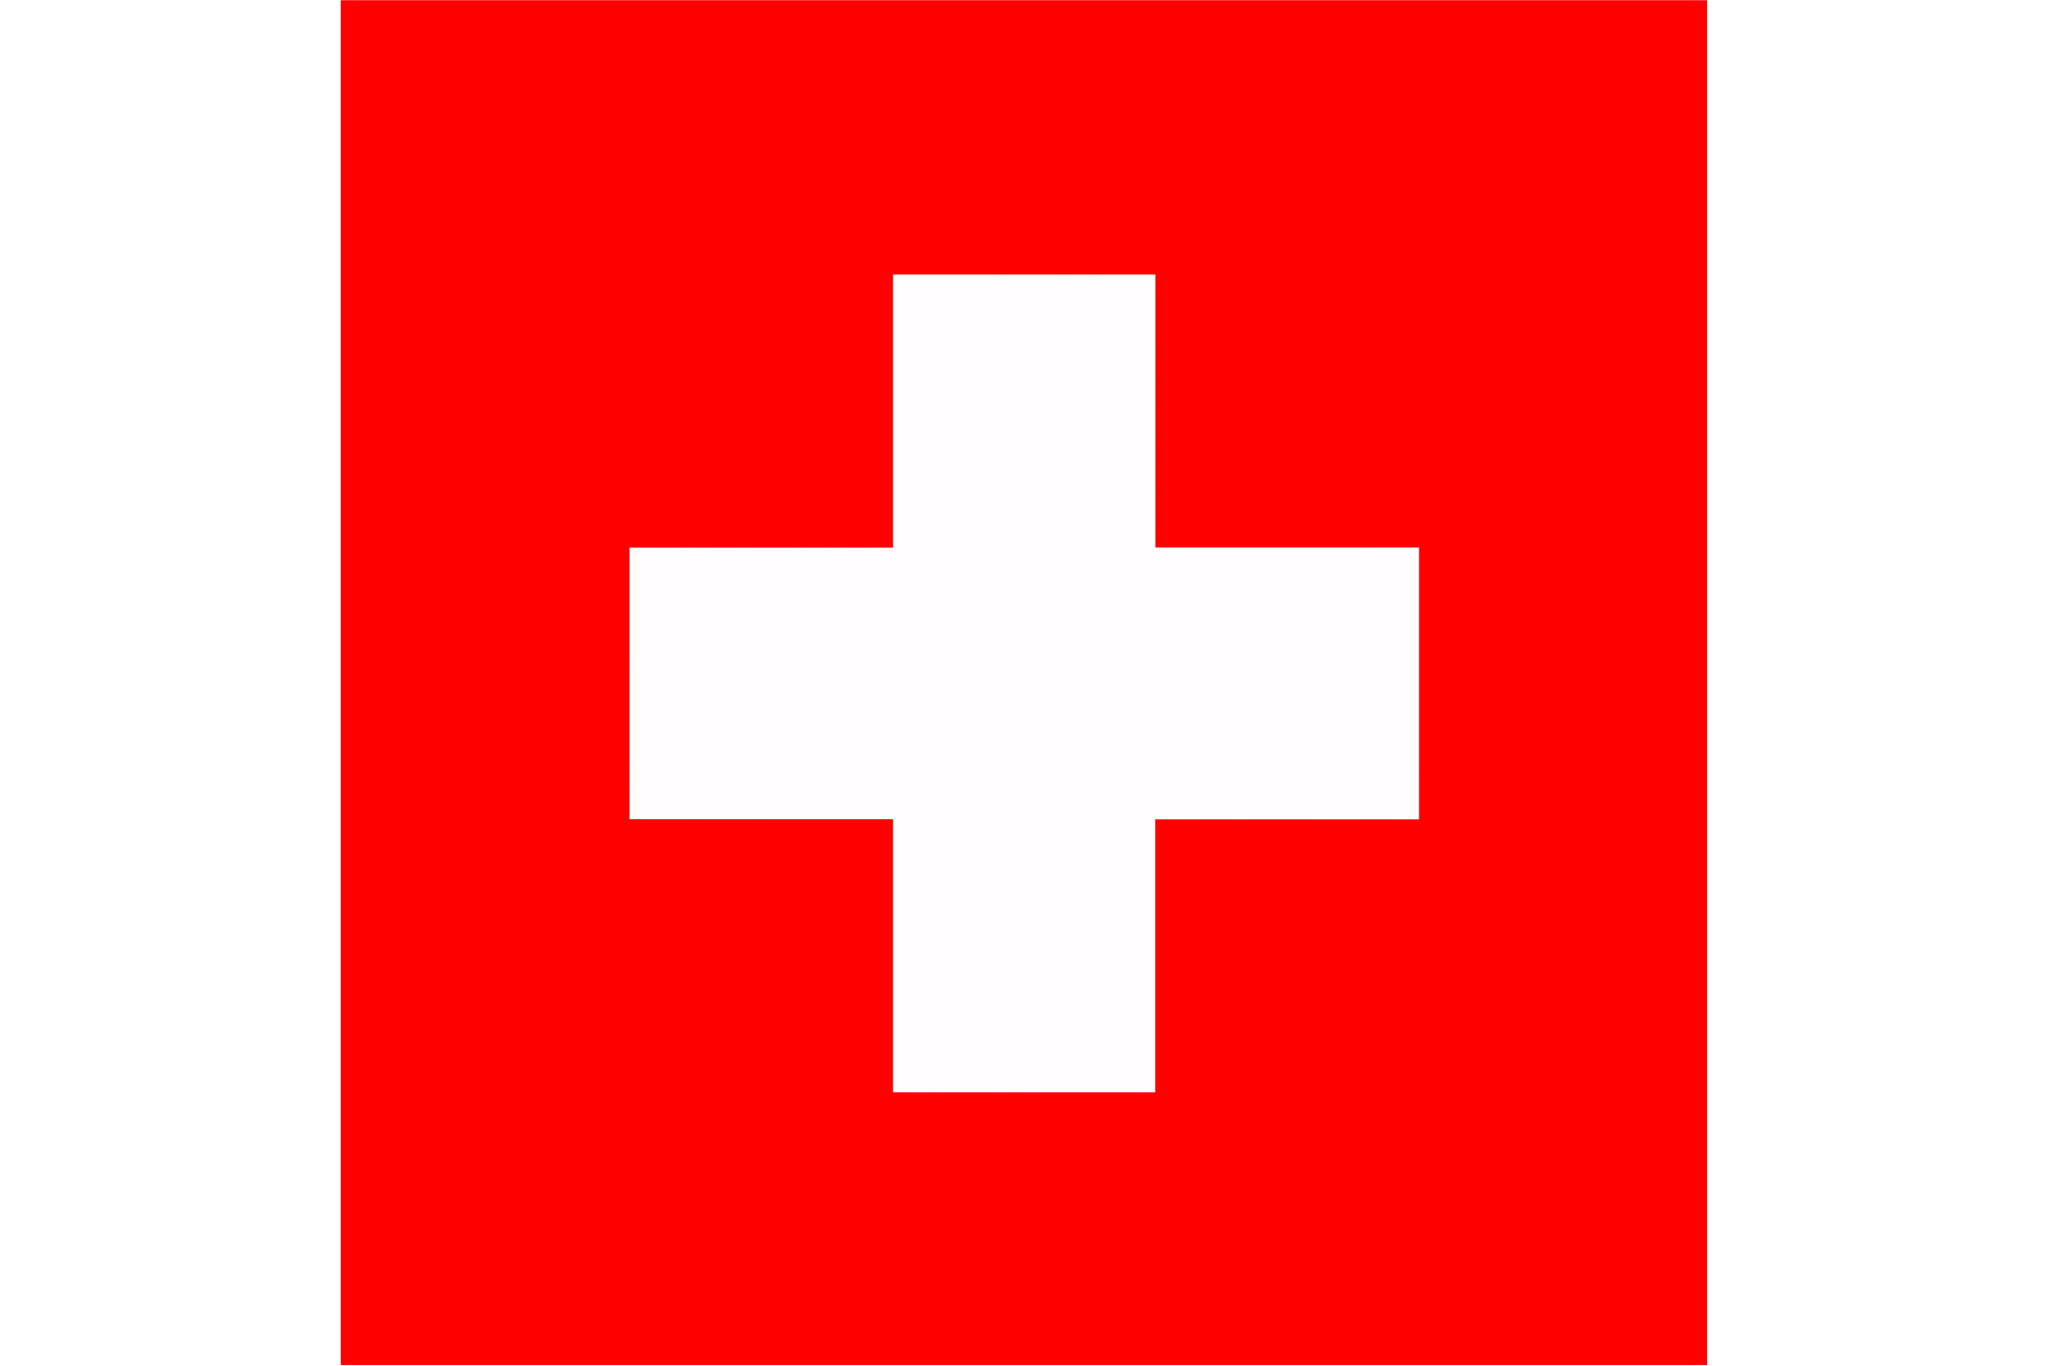 The official flag of Switzerland. Photo credit: OShuma / Shutterstock.com.